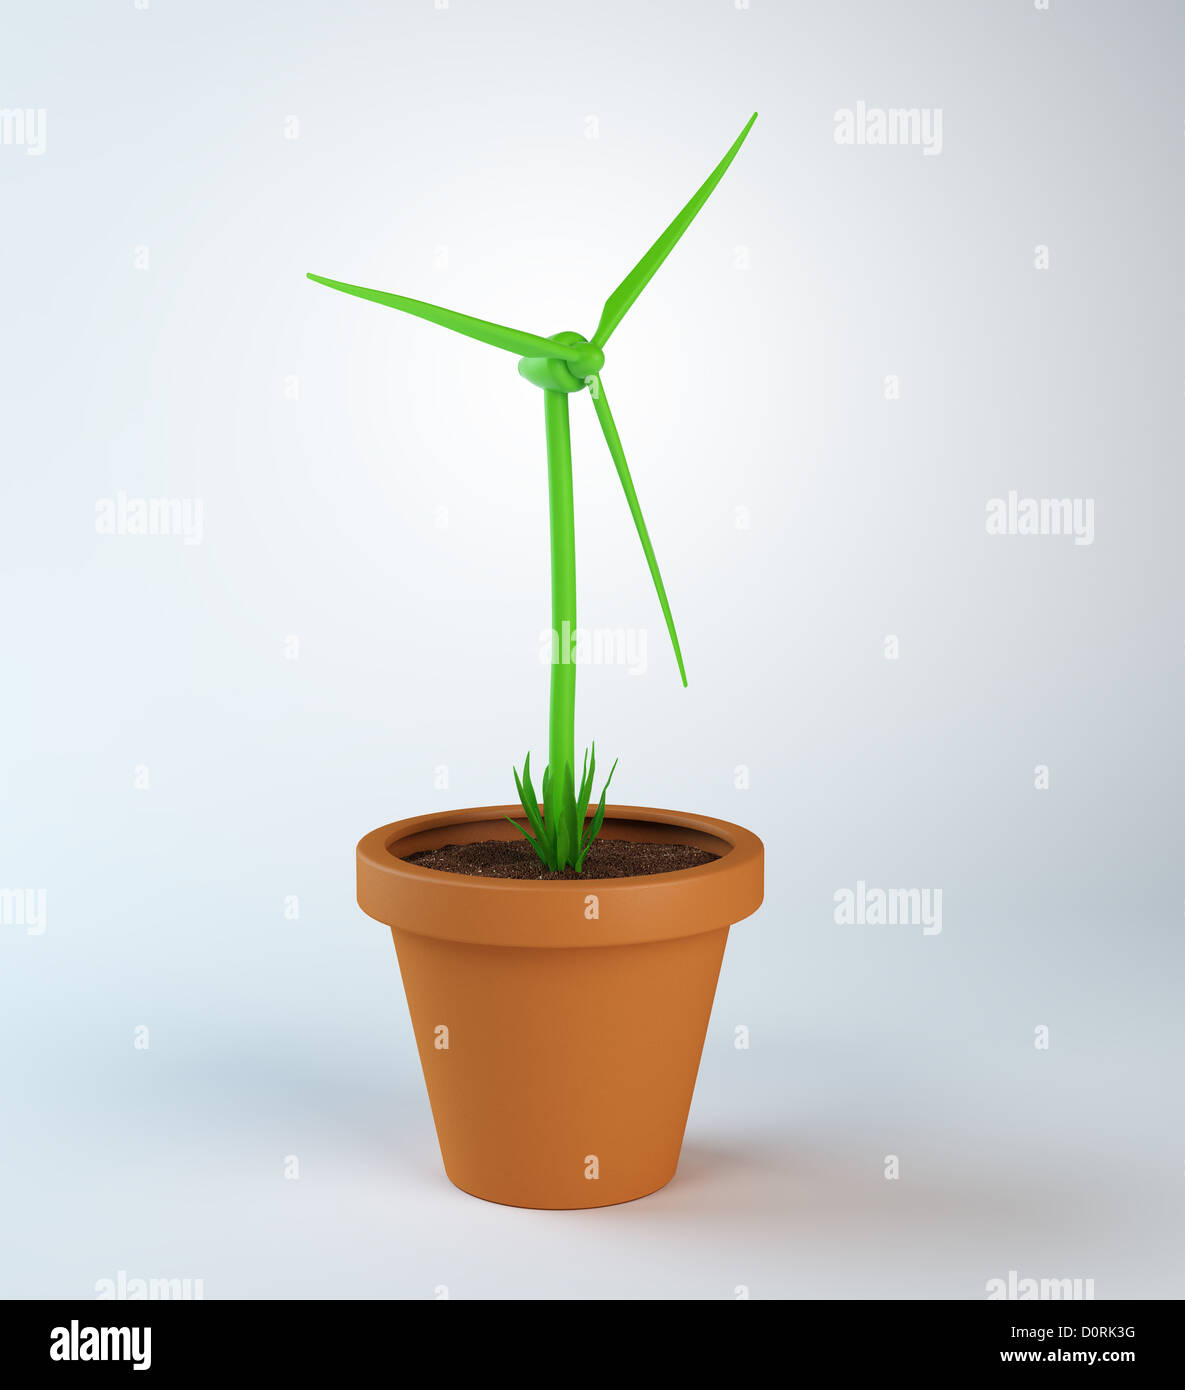 wind turbine growing out of a pot plant - Stock Image